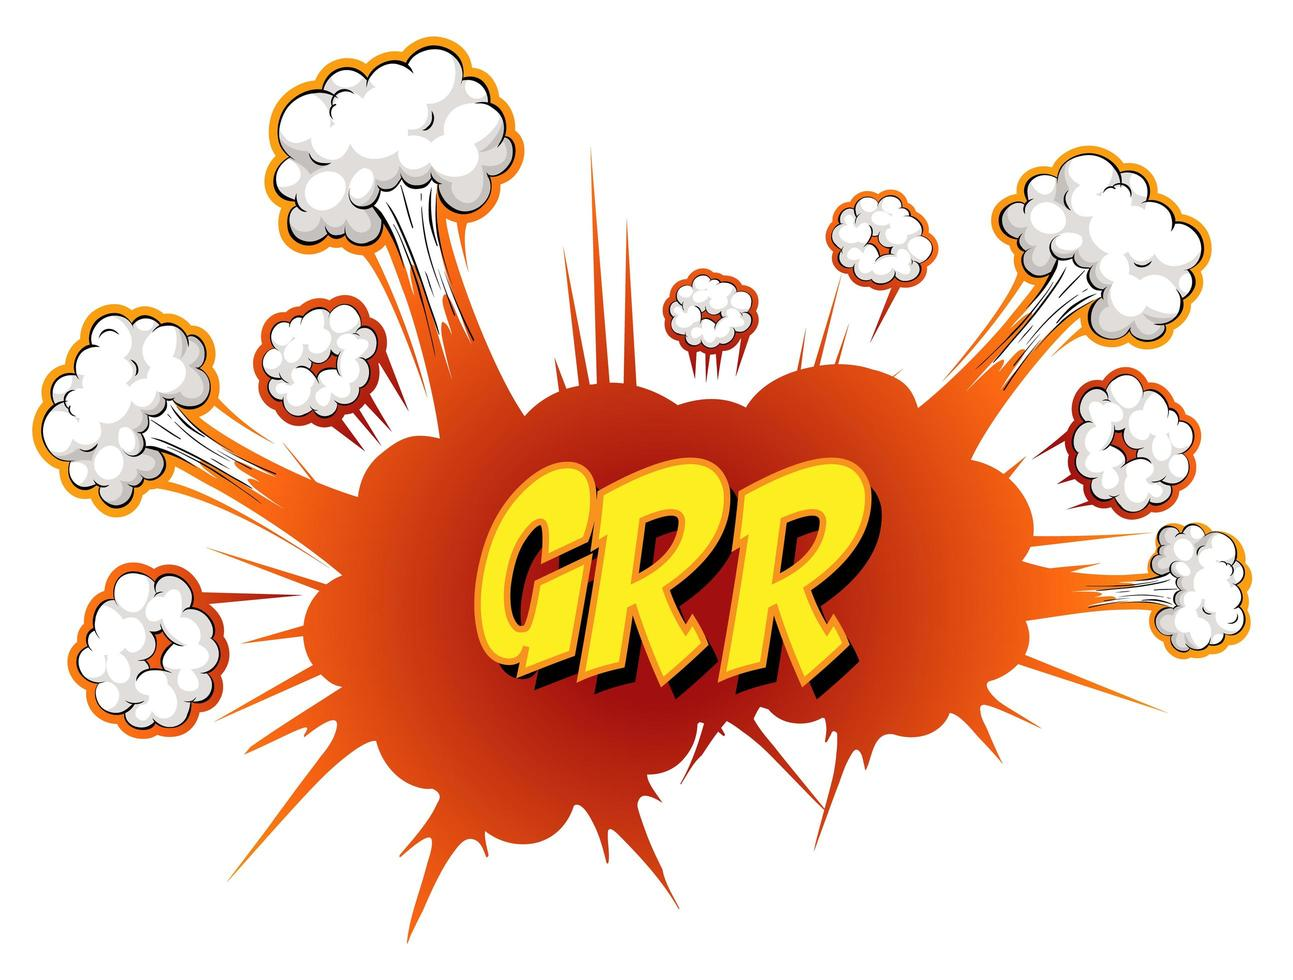 Comic speech bubble with grr text vector